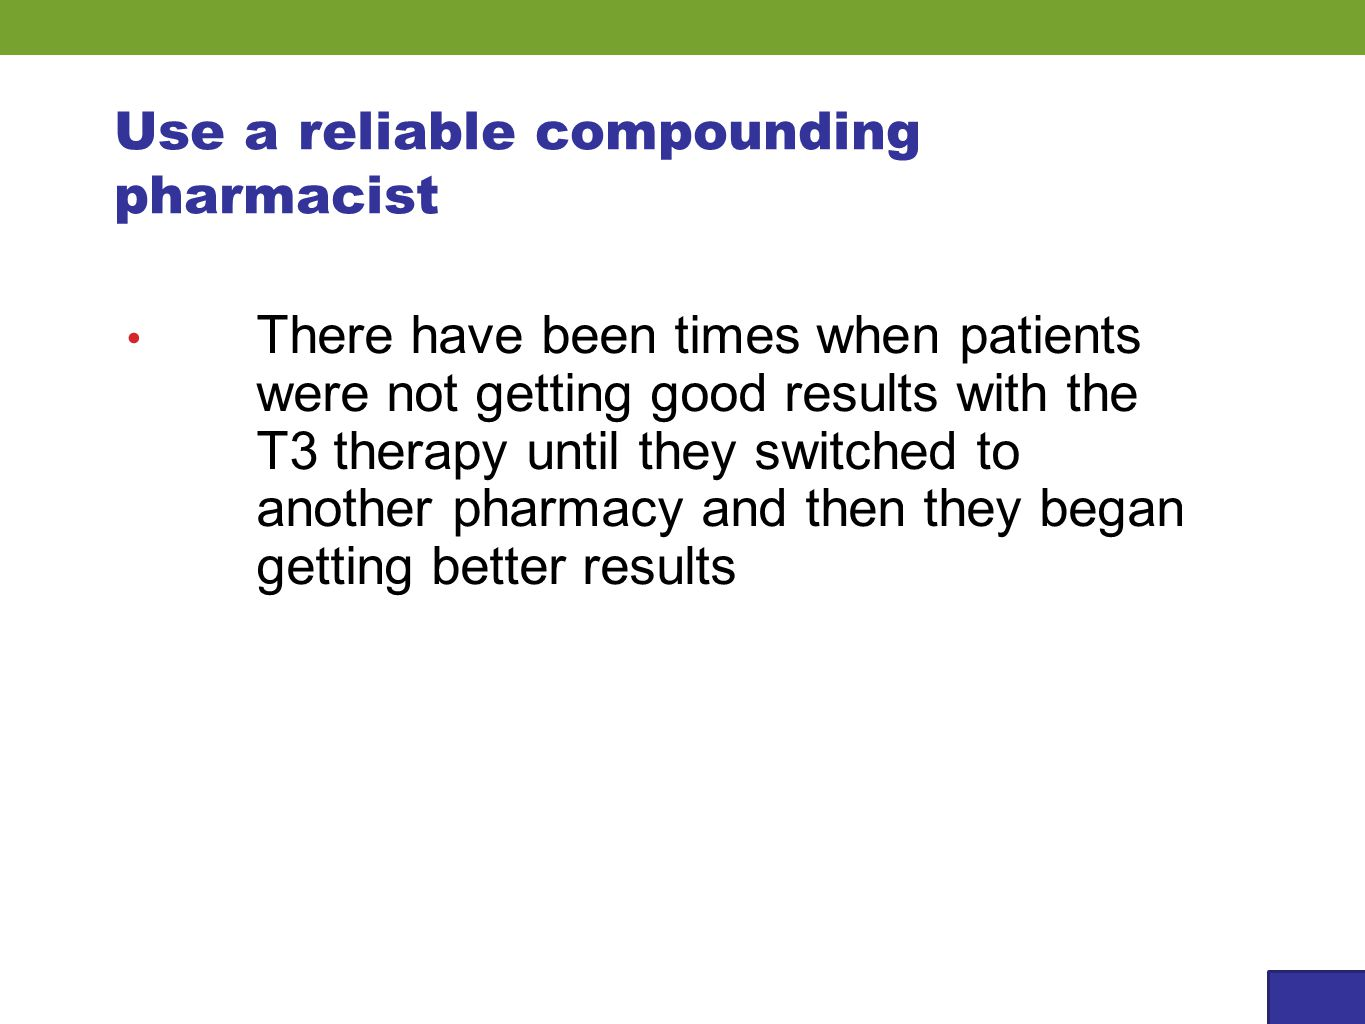 Use a reliable compounding pharmacist There have been times when patients were not getting good results with the T3 therapy until they switched to another pharmacy and then they began getting better results